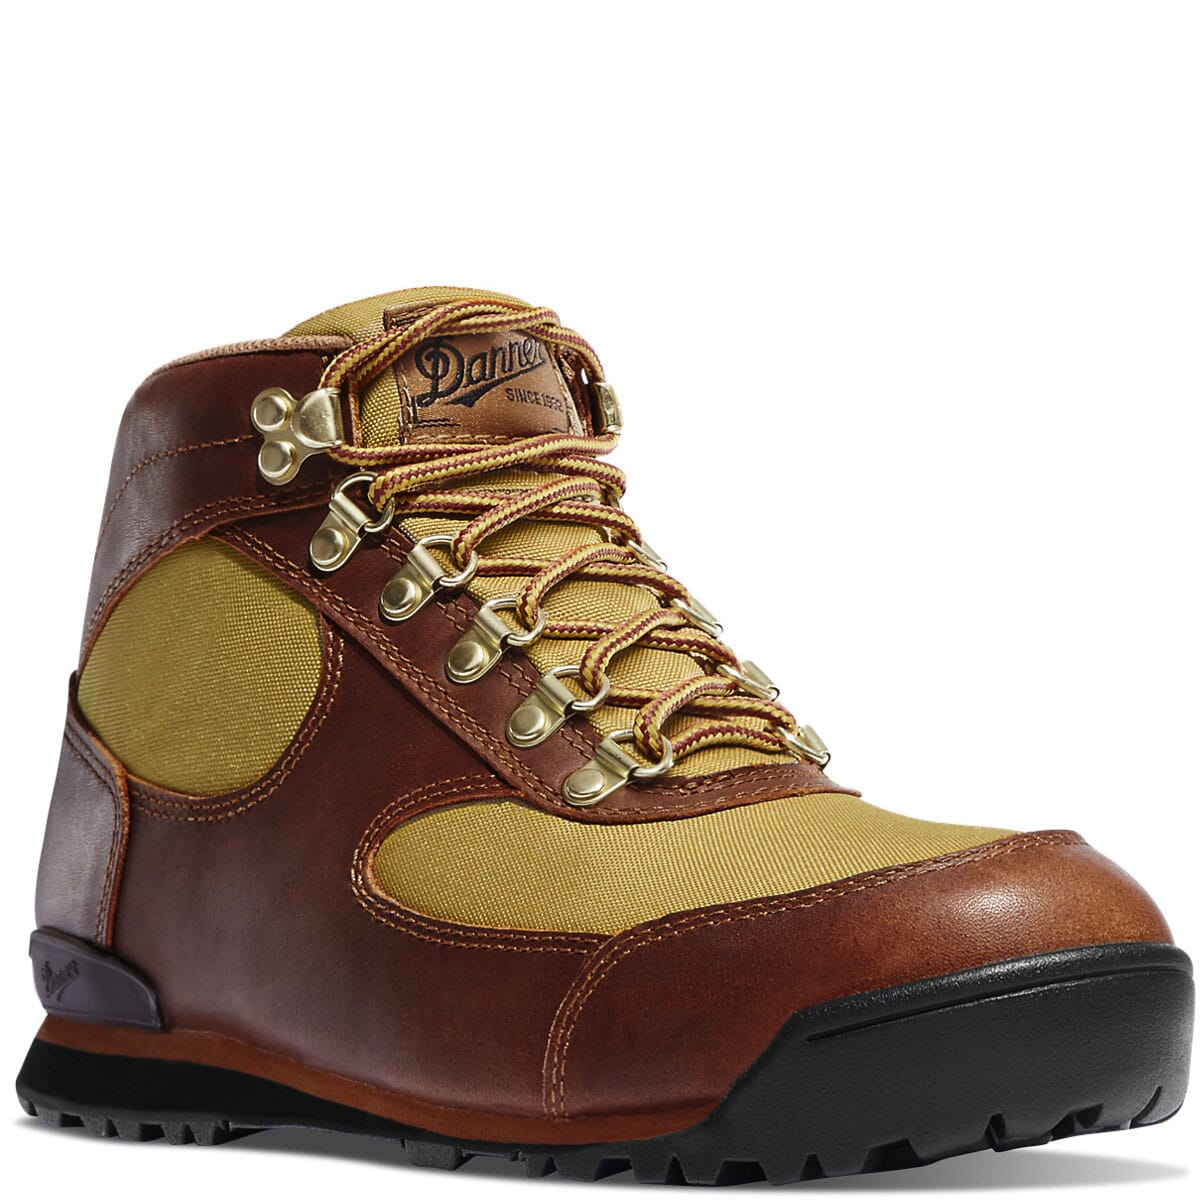 Image for Danner Women's Jag Hiking Boots - Brown/Khaki from elliottsboots